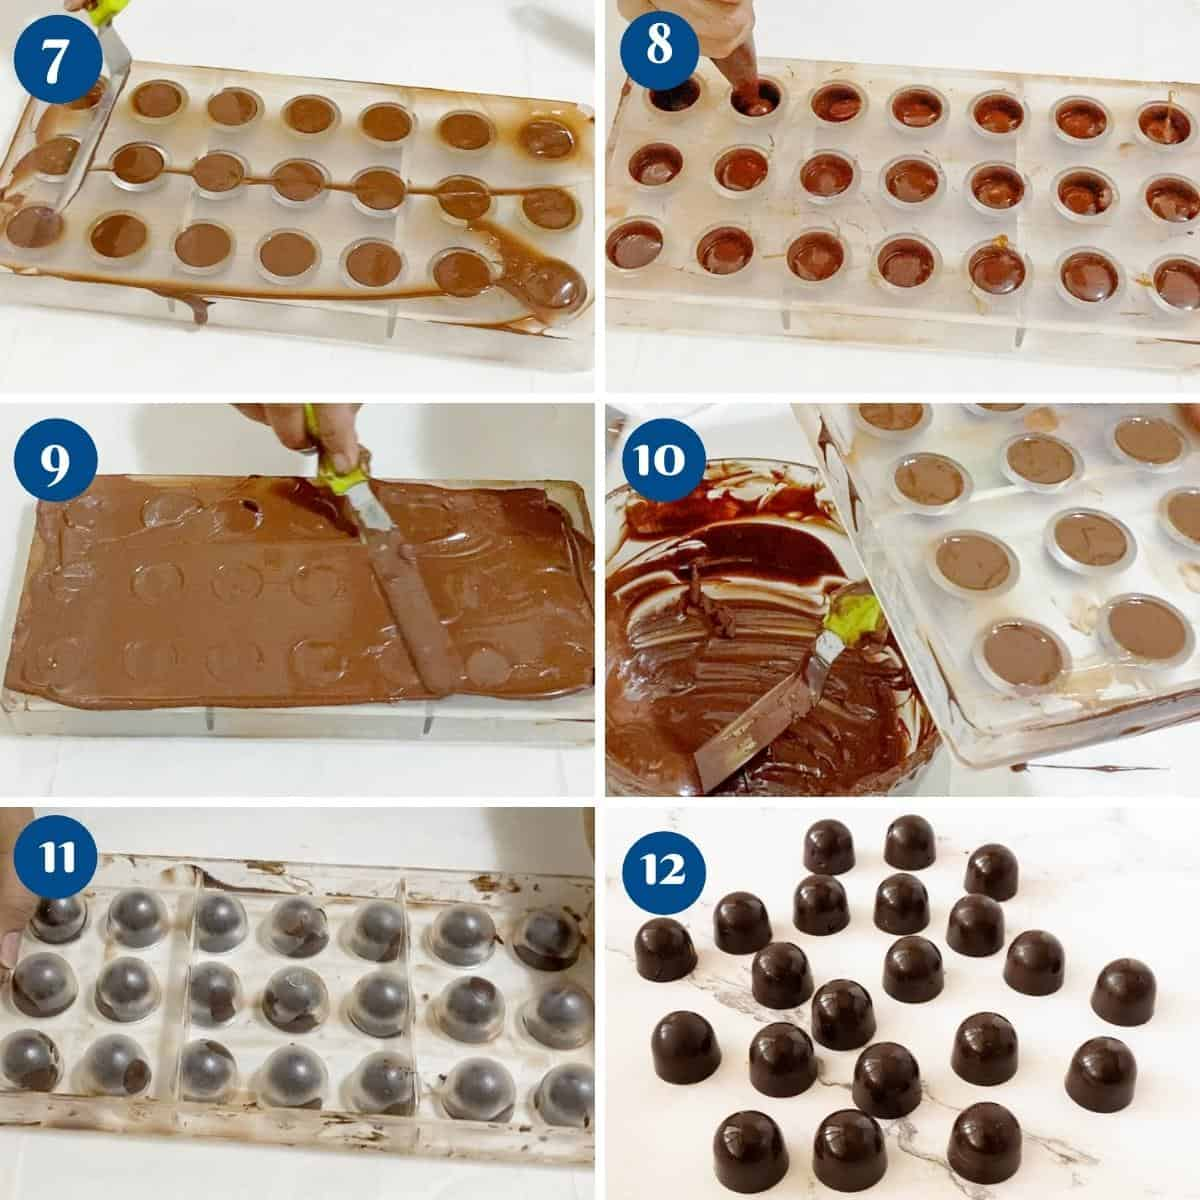 Progress pictures collage how to temper chocolate.